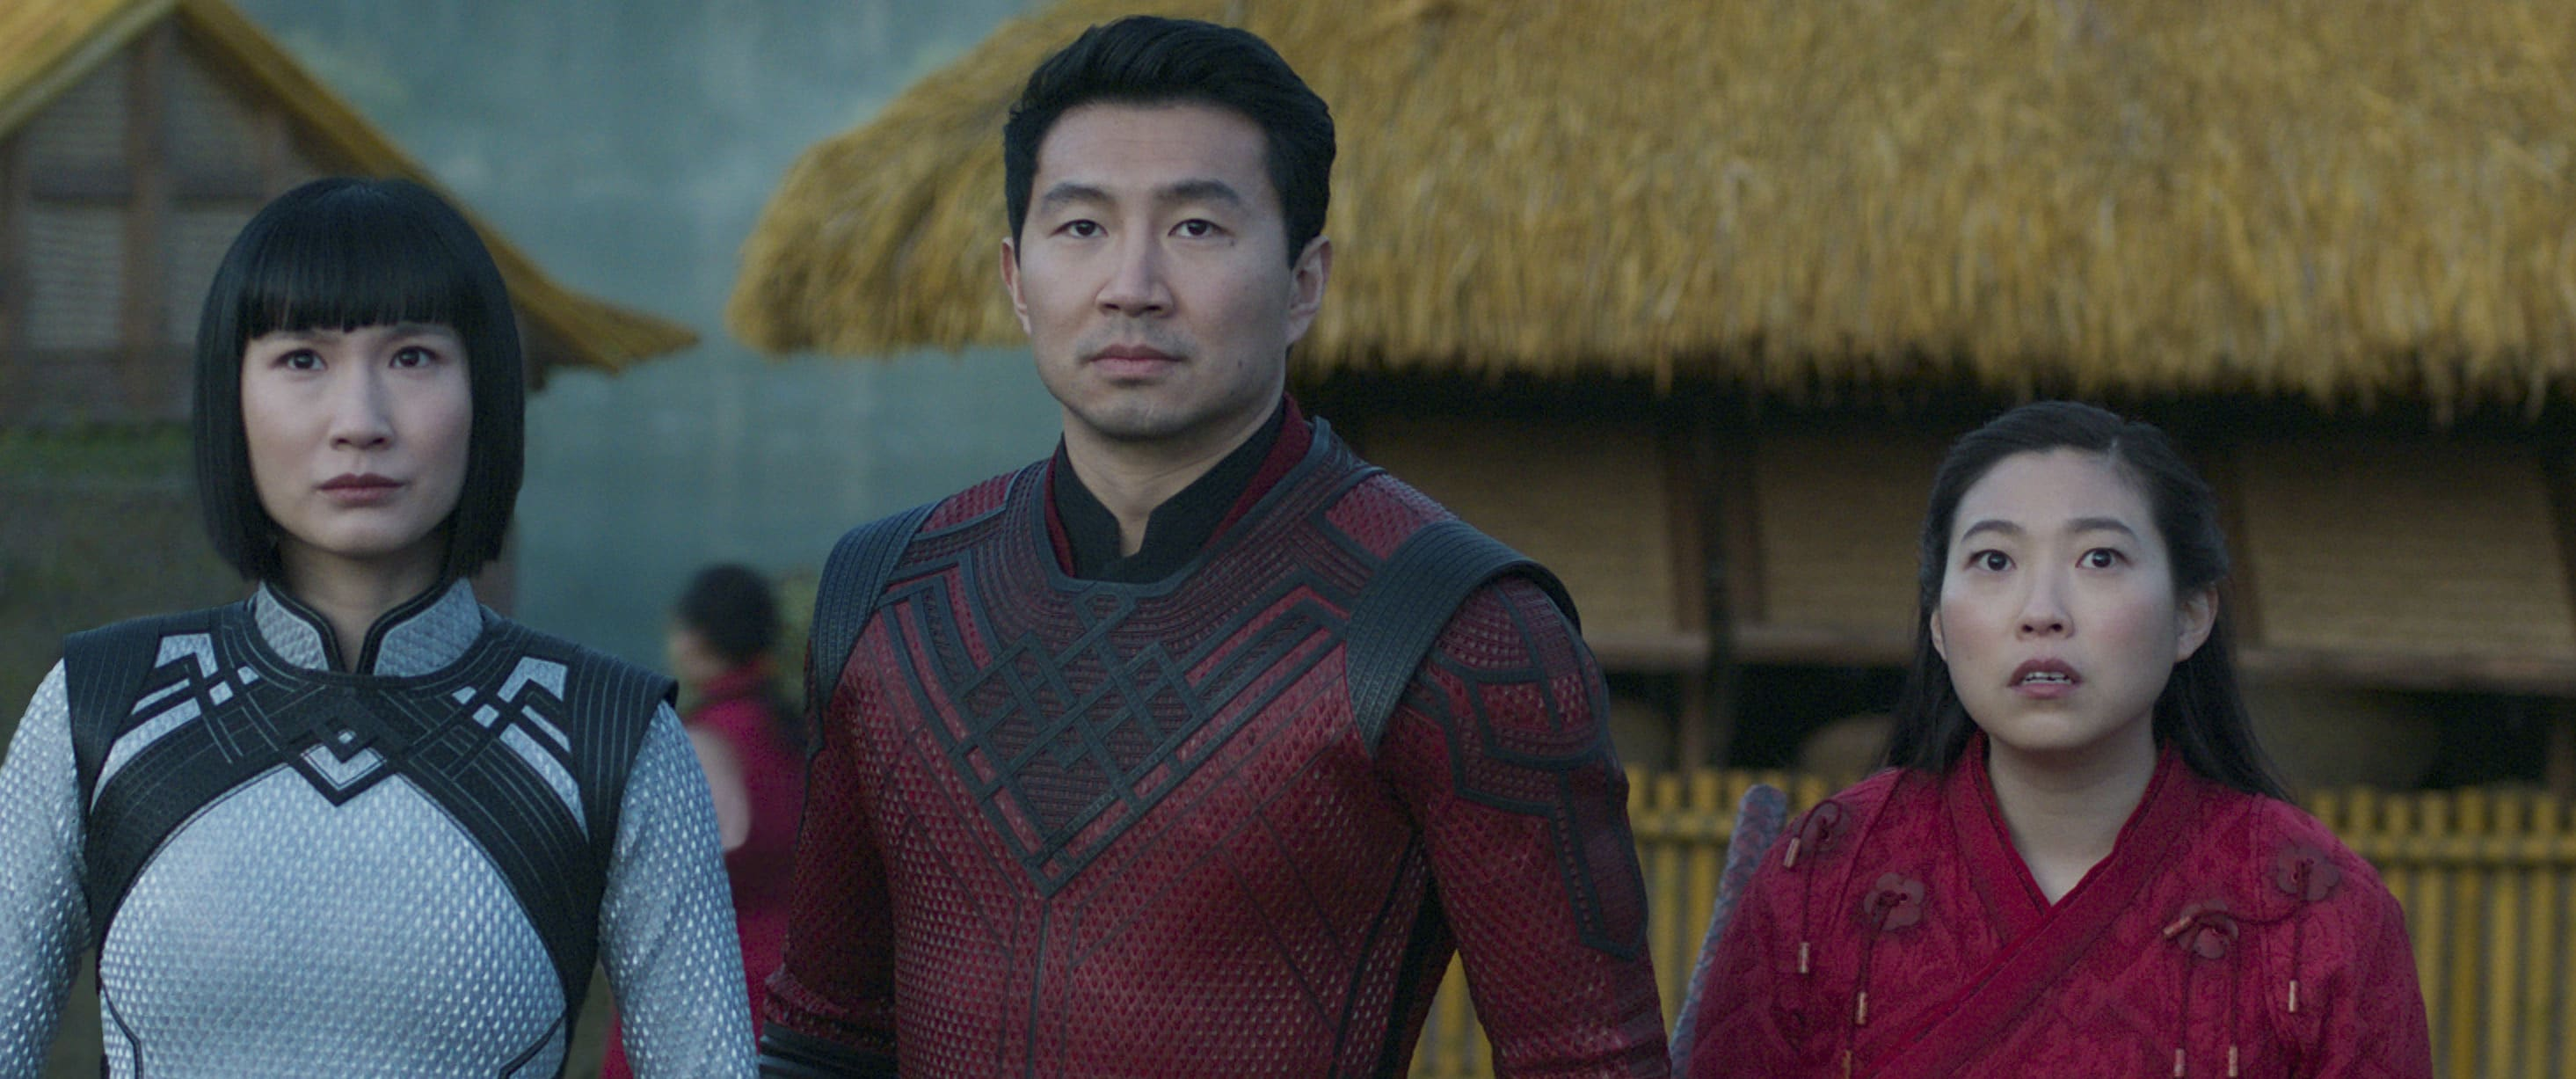 Meng'er Zhang as Xialing, Simu Liu as Shang-Chi, and Awkwafina as Katy in Marvel Studios' Shang-Chi and the Legend of the Ten Rings